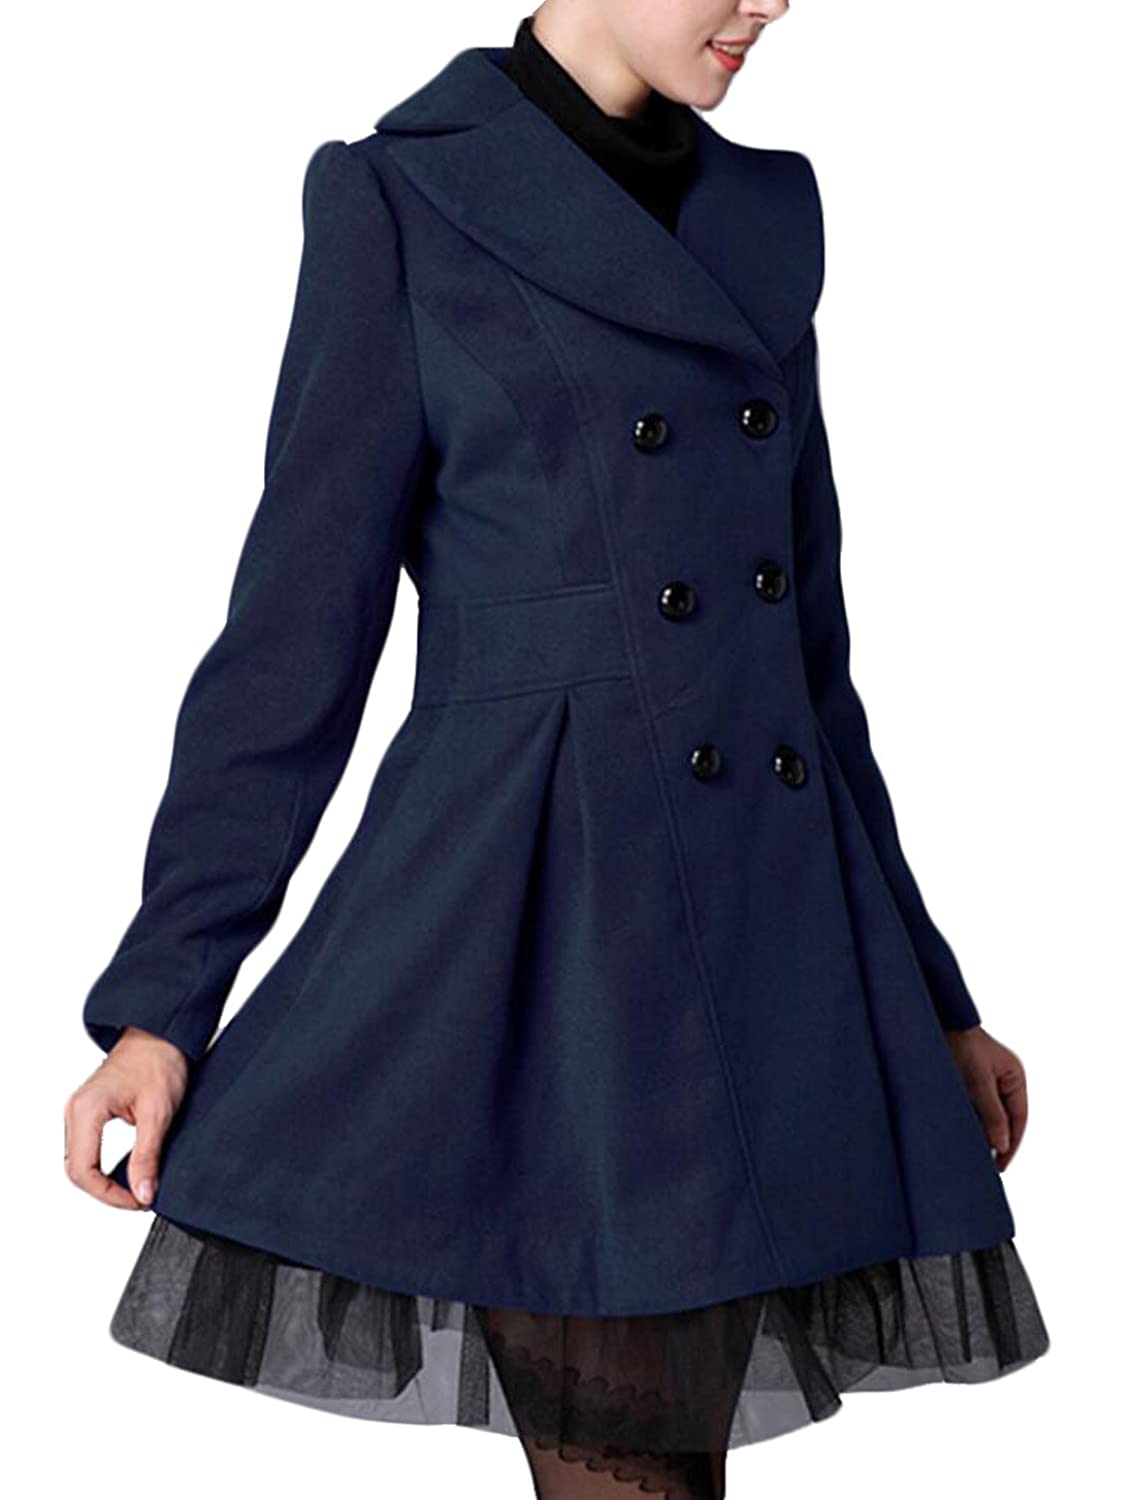 GAGA Women's Lace Double-breasted Wool Trench Coat Jacket